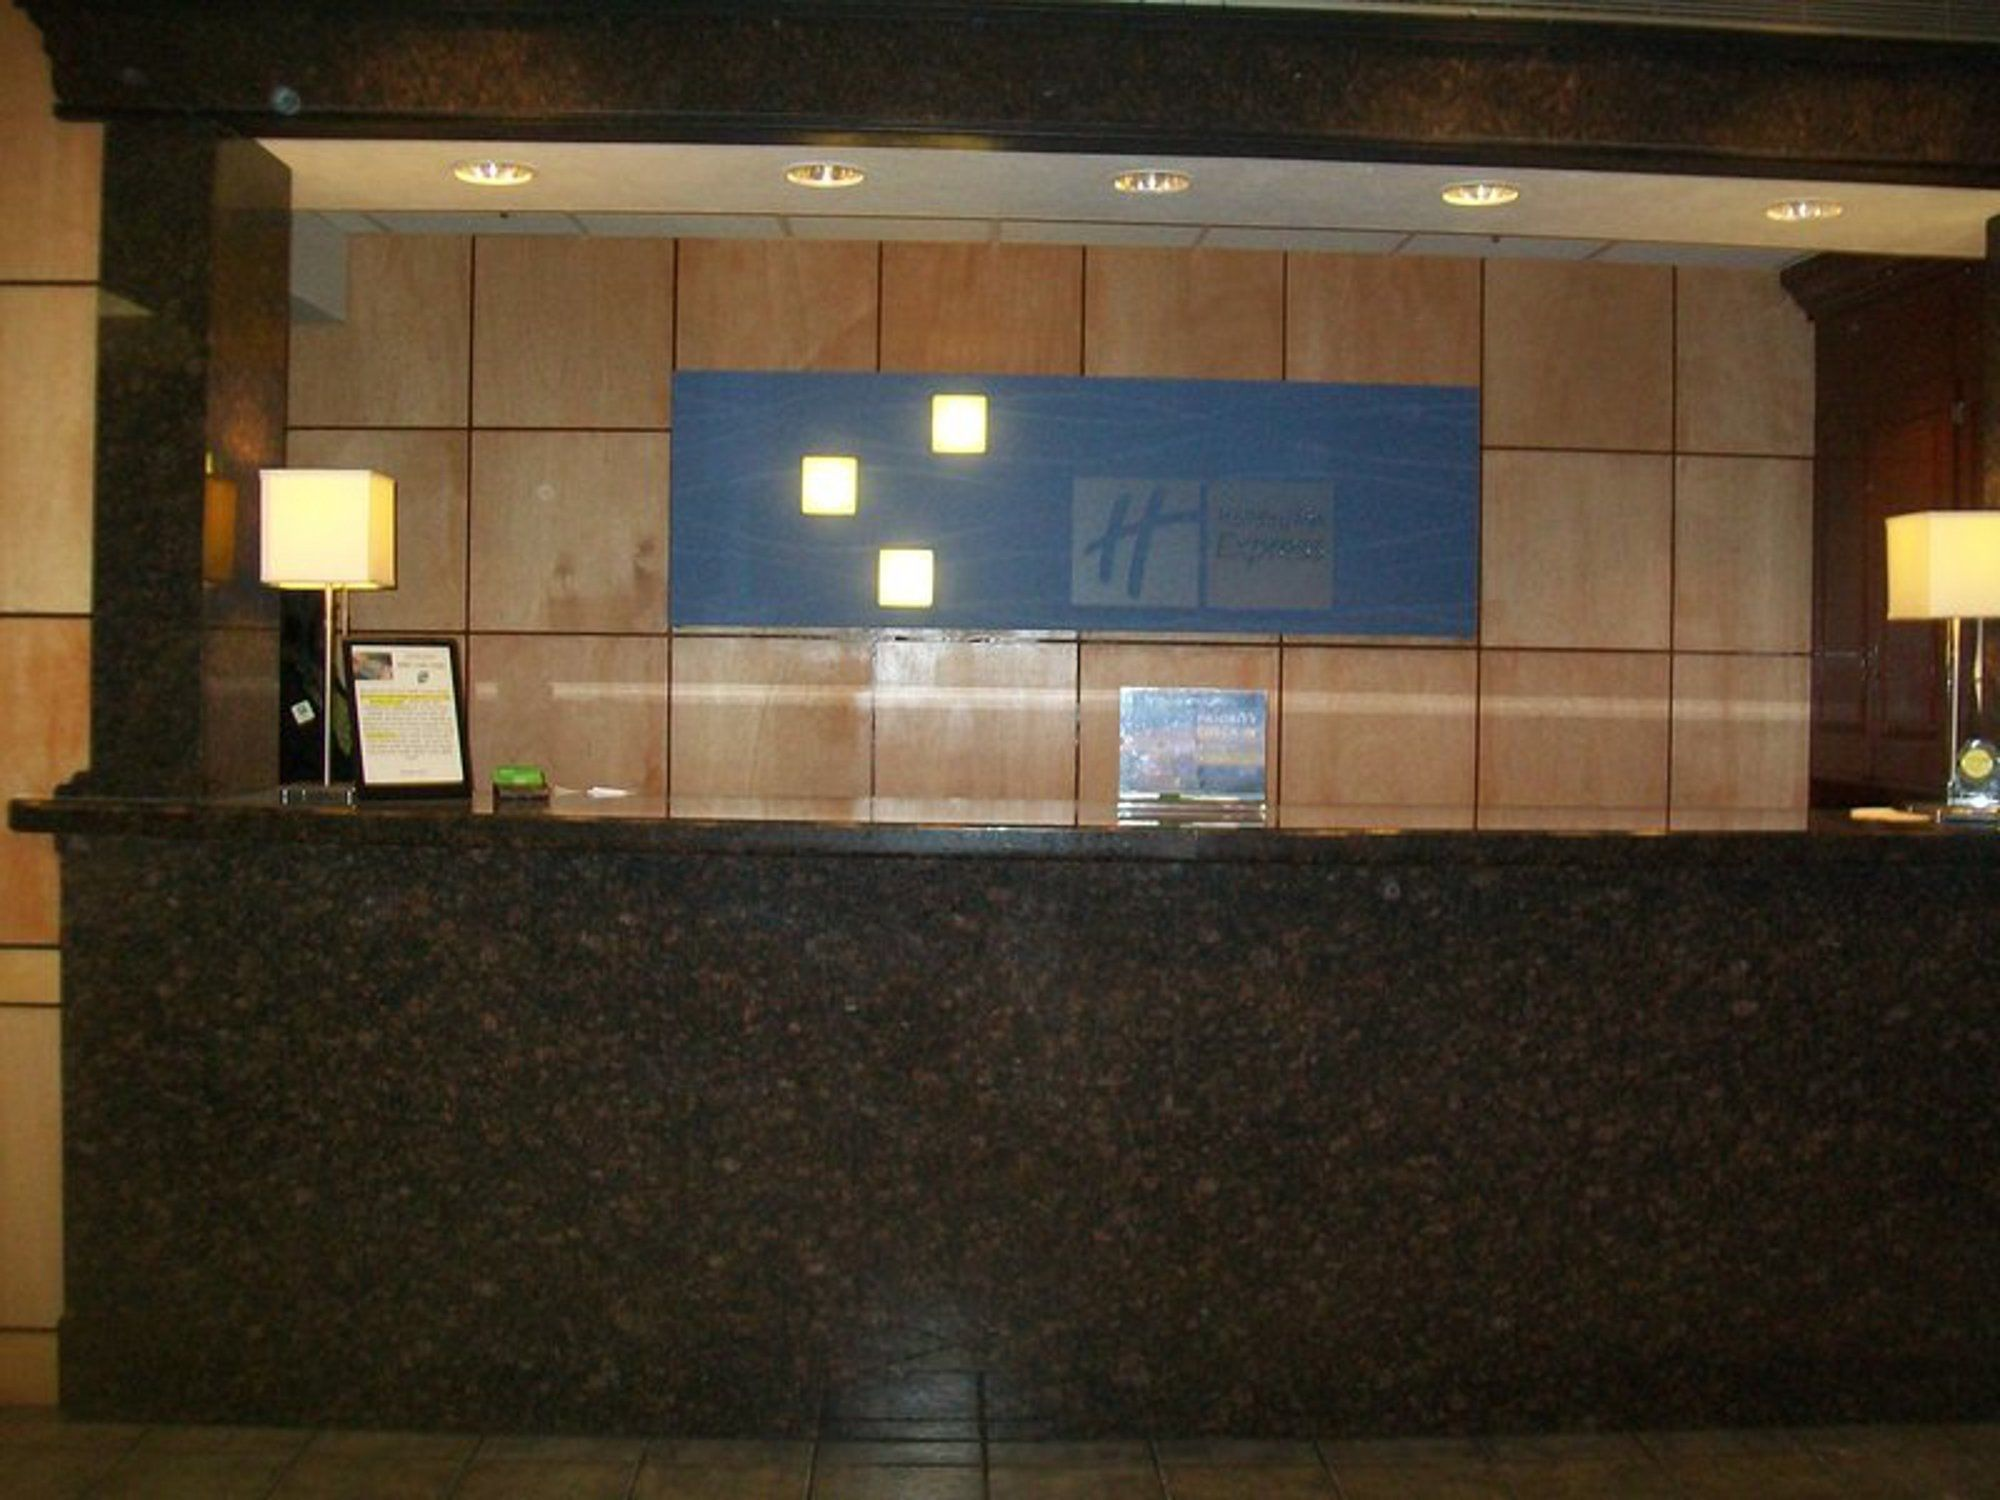 Holiday Inn Express Aberdeen in Aberdeen, MD